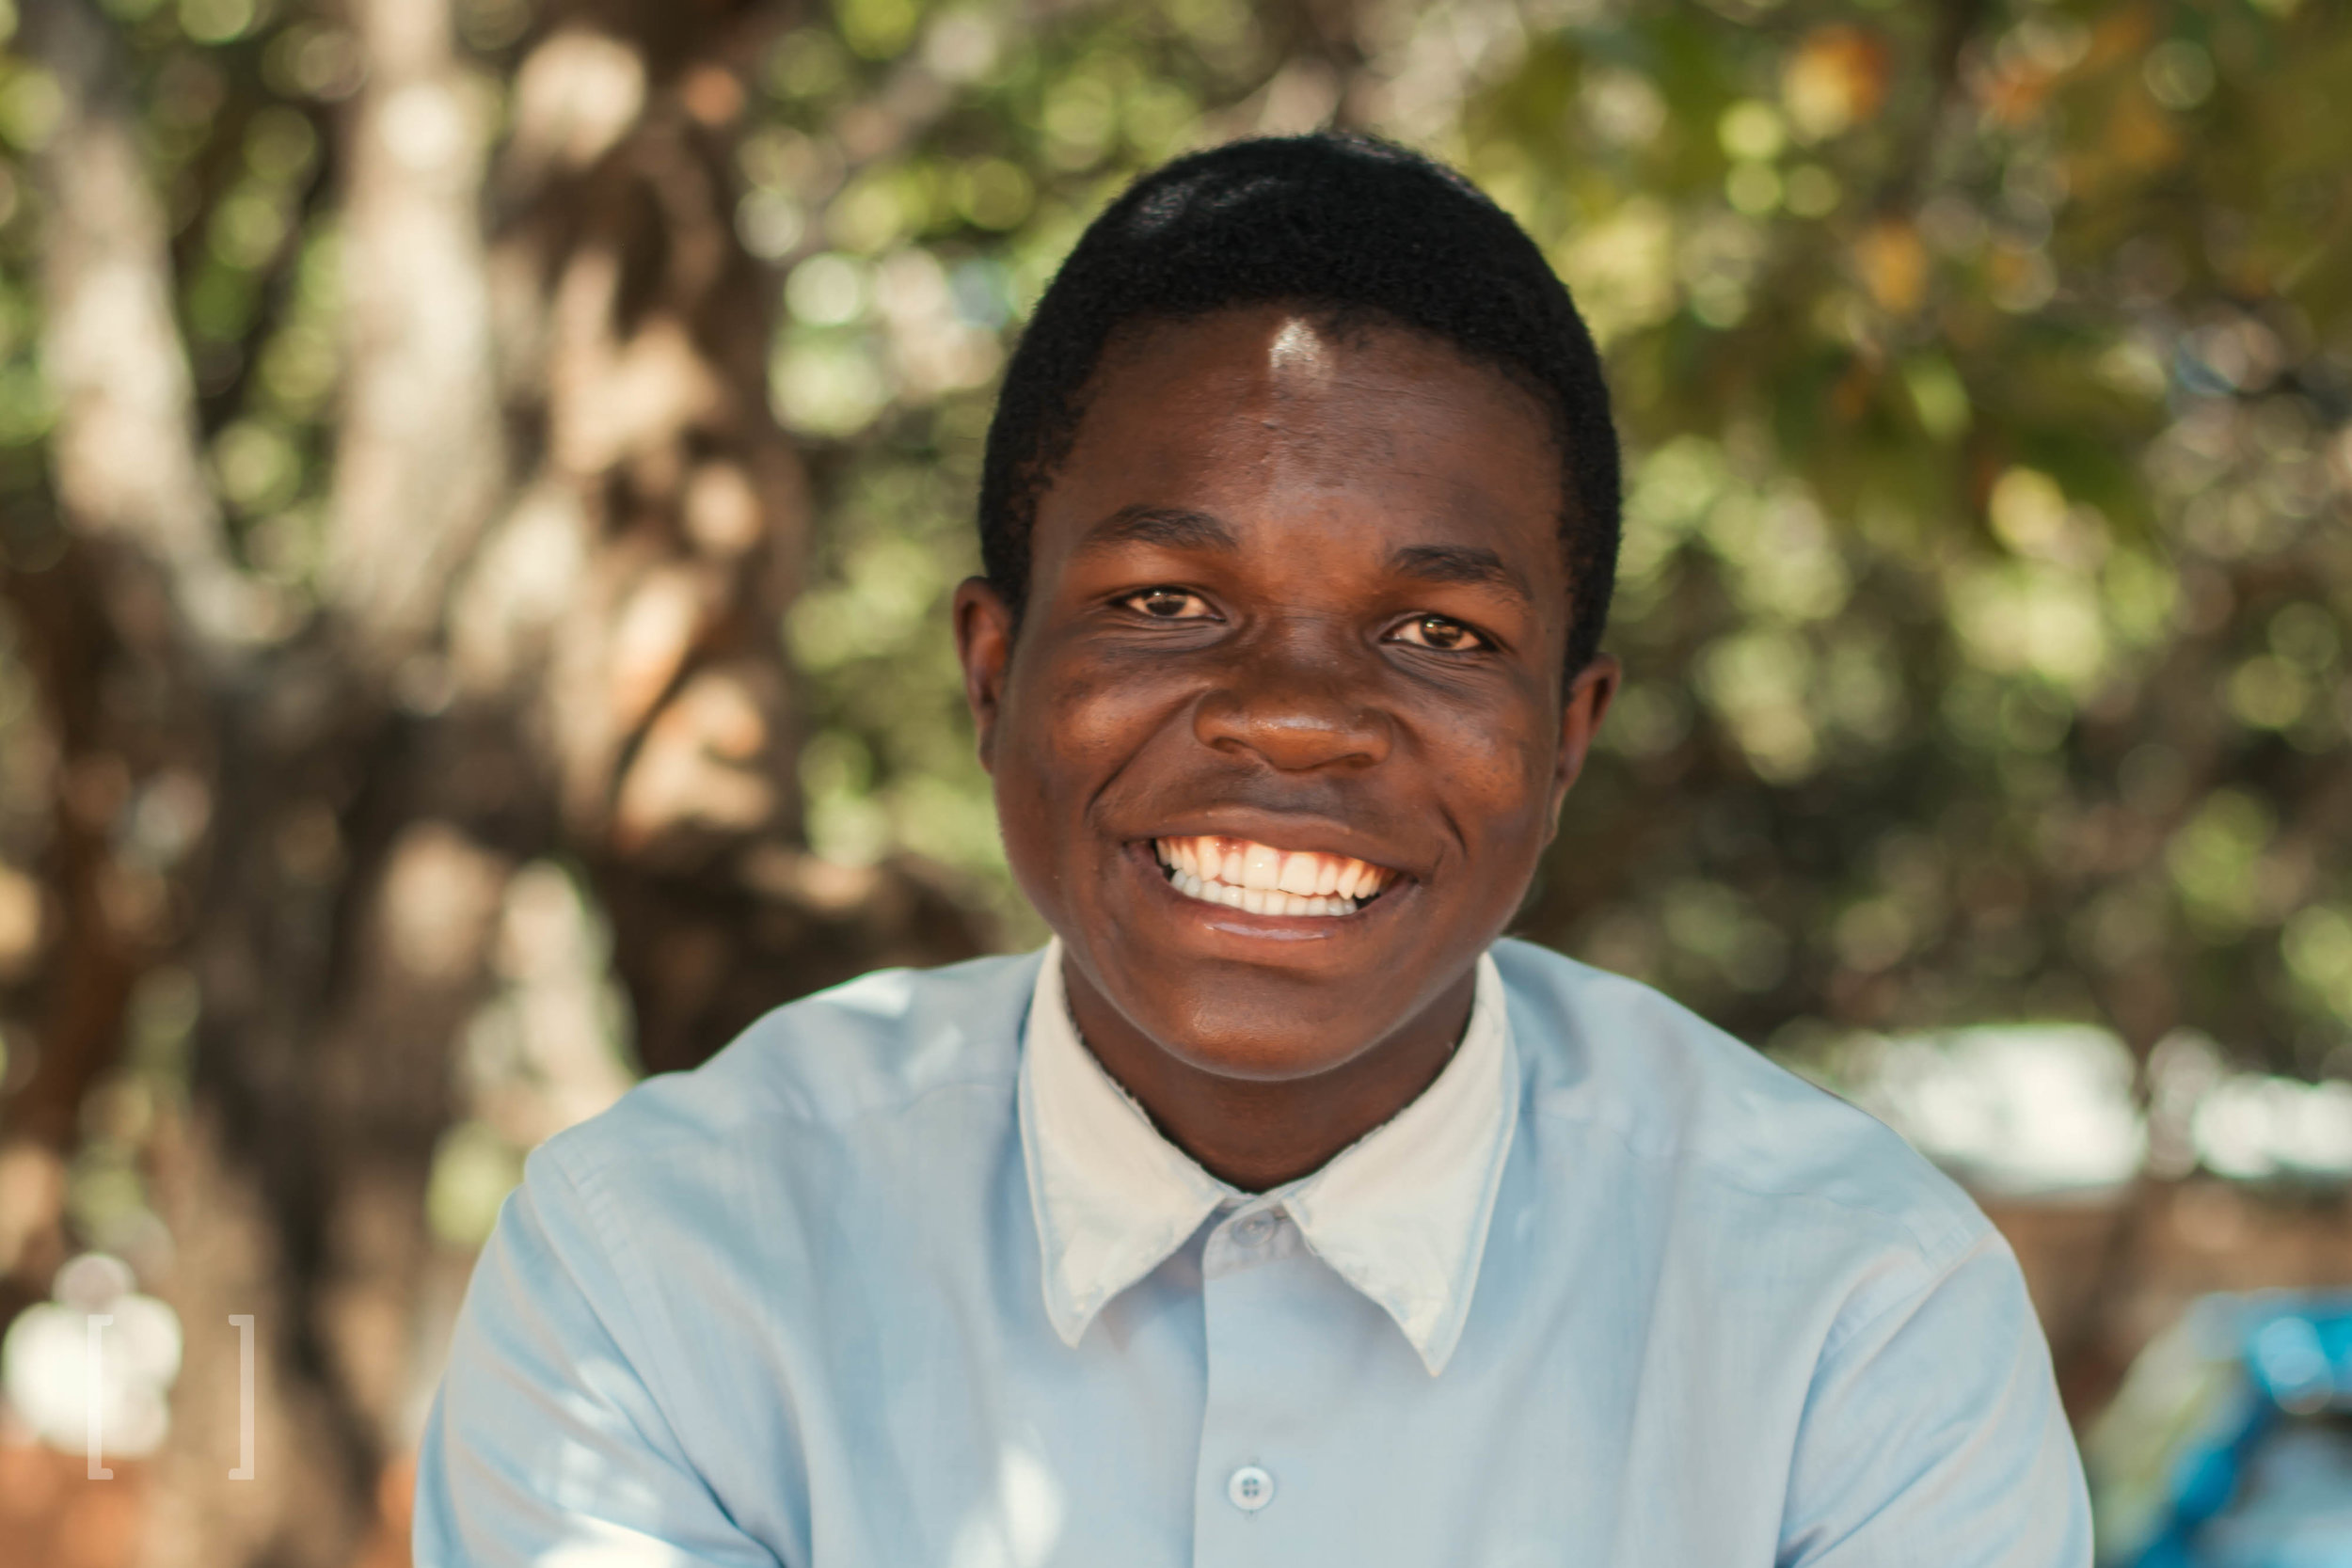 Emmanuel M. - Emmanuel likes playing soccer with friends during his free time. He is excelling in all subjects in school and wishes to become a police officer when he finish his education. Be his sponsor!